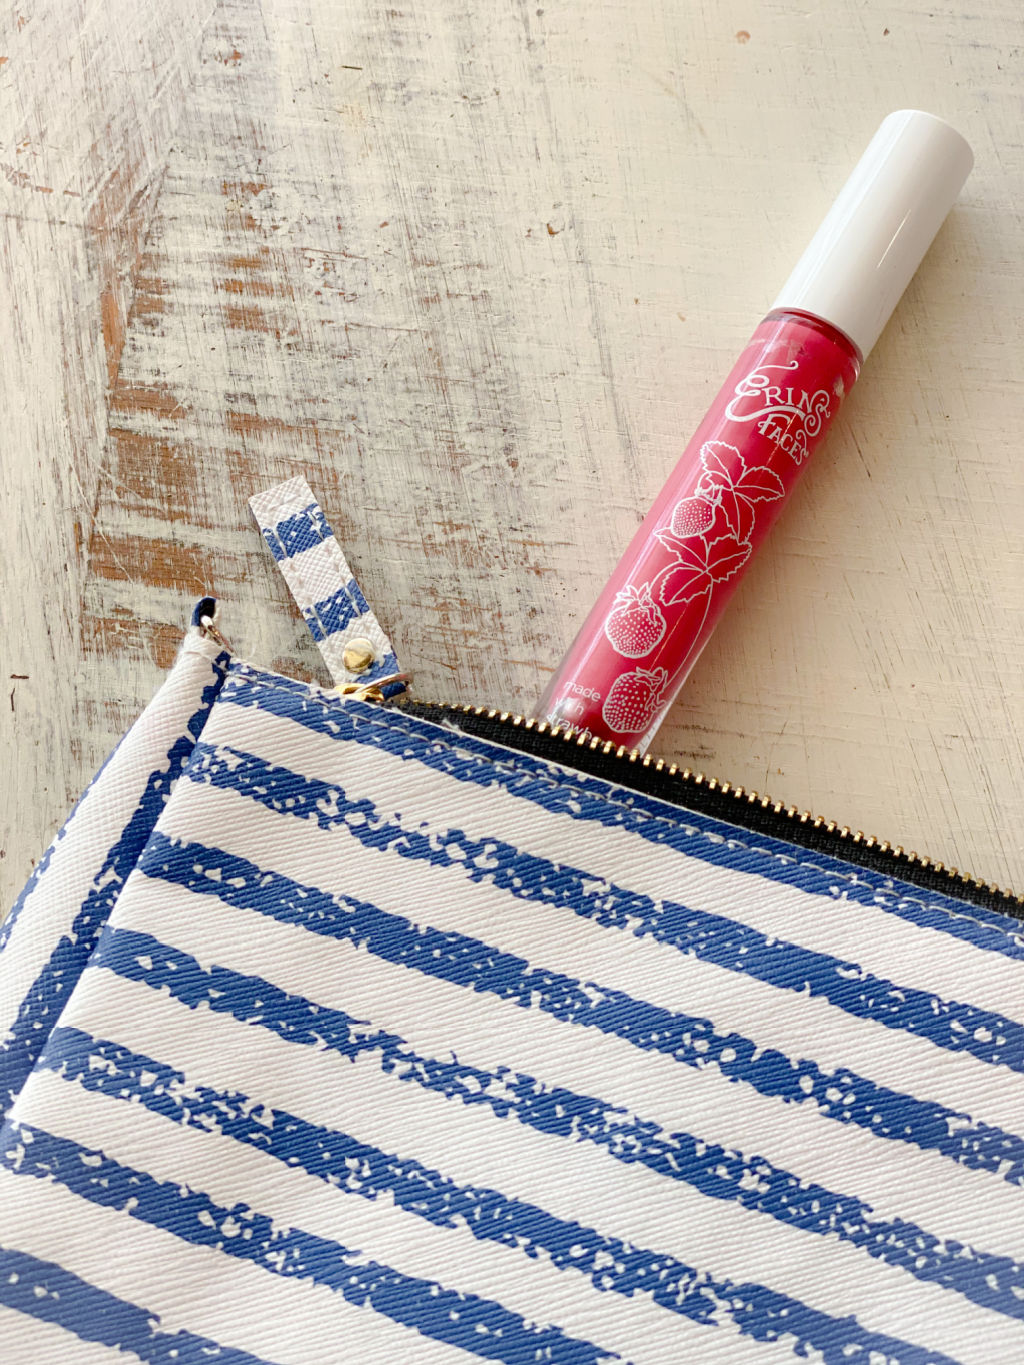 pink lip gloss with white cap peeking out of blue an white striped bag on top of white distressed table